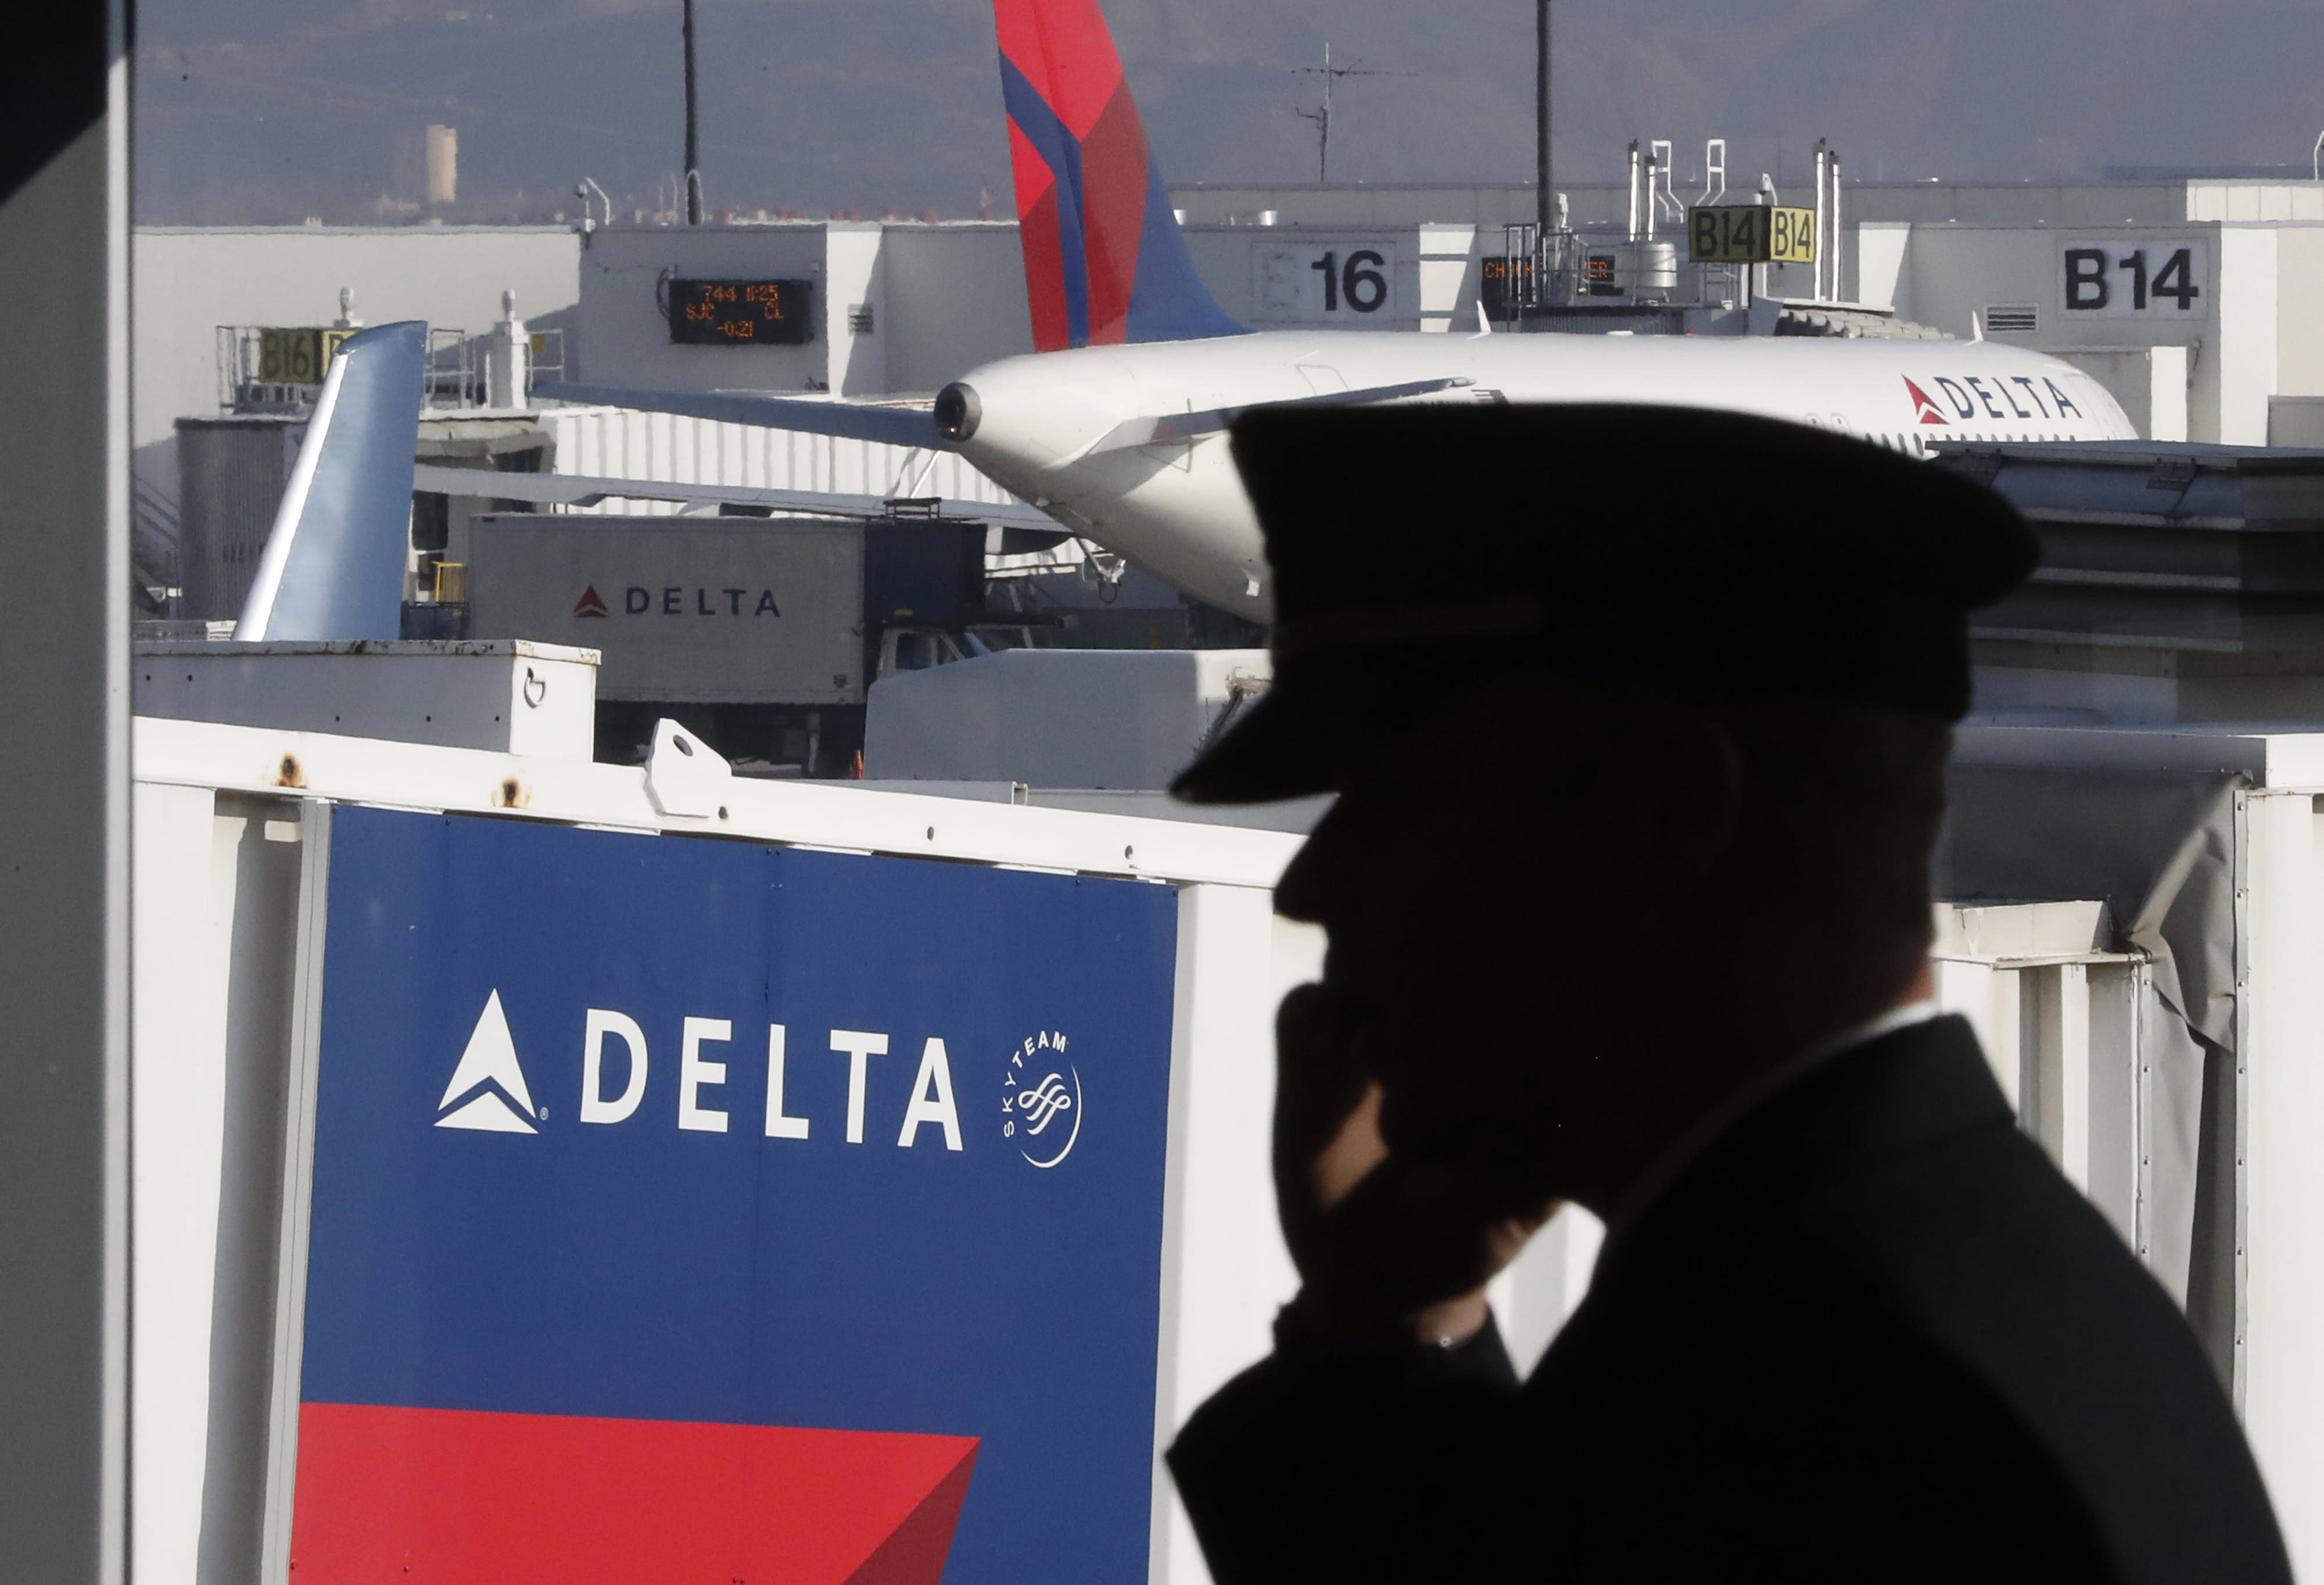 Delta pilots approve cost-cutting measures to avoid furloughs until 2022